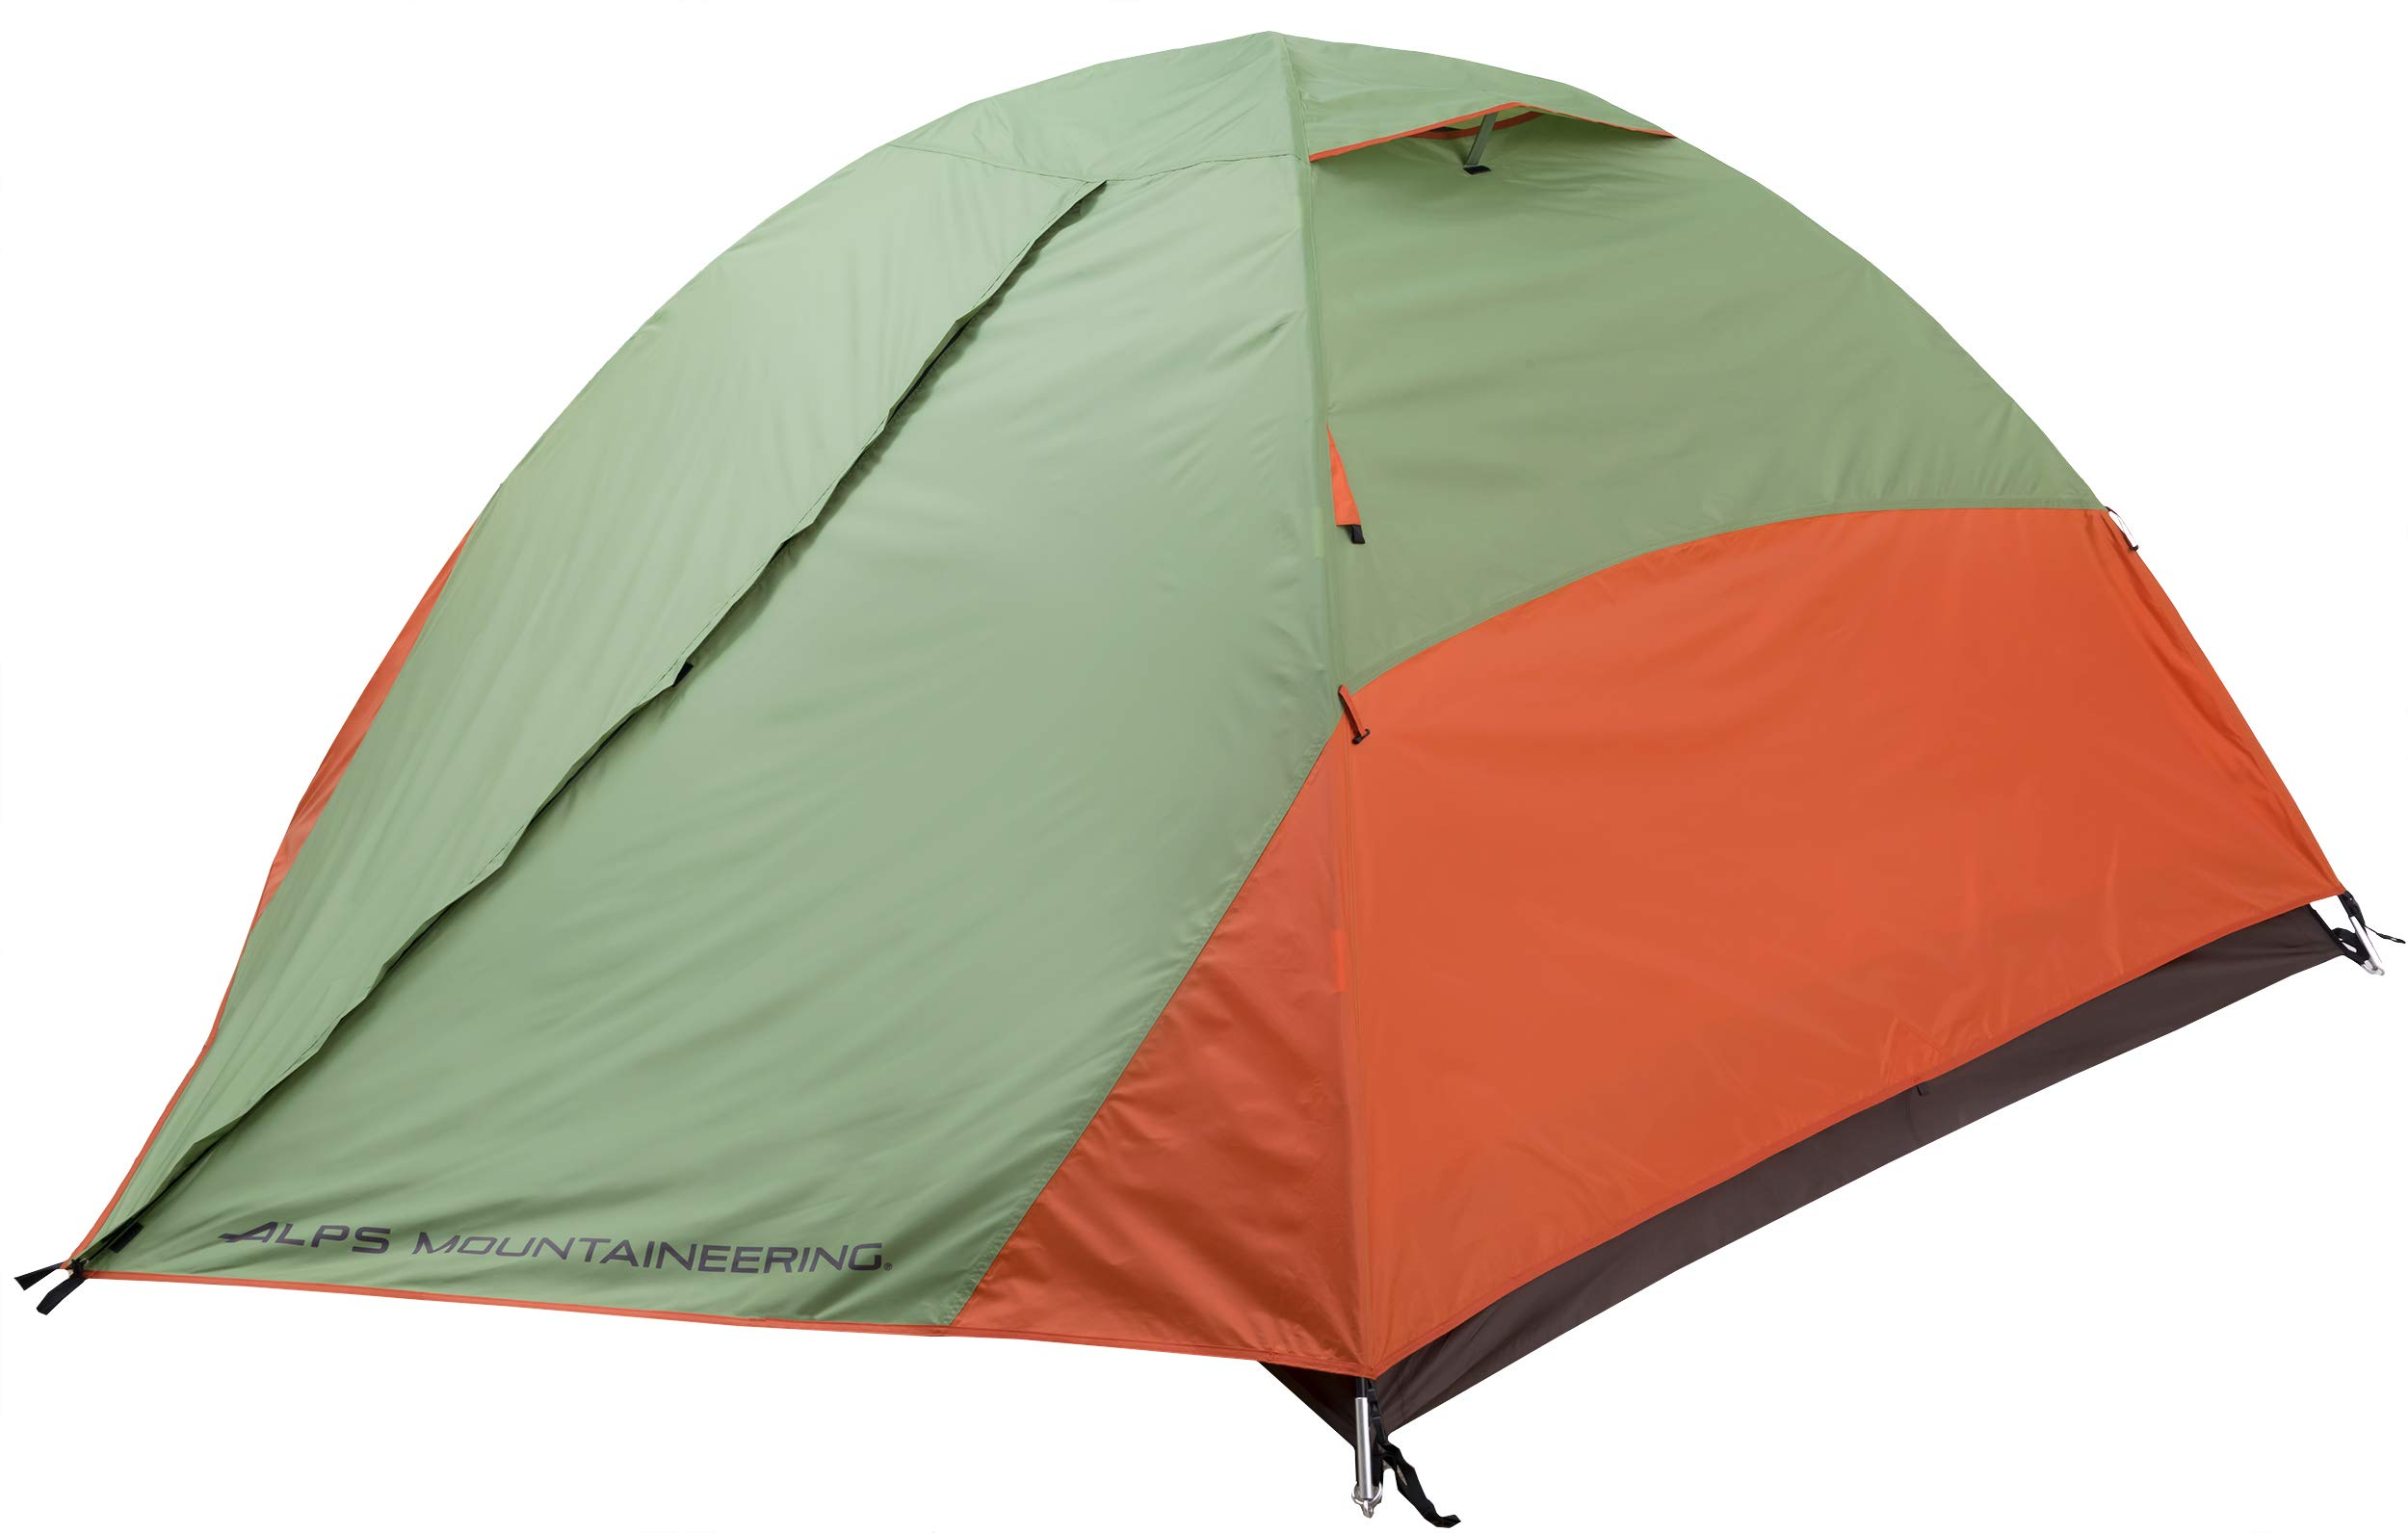 ALPS Mountaineering Taurus 4-Person Tent FG, Sage/Rust by ALPS Mountaineering